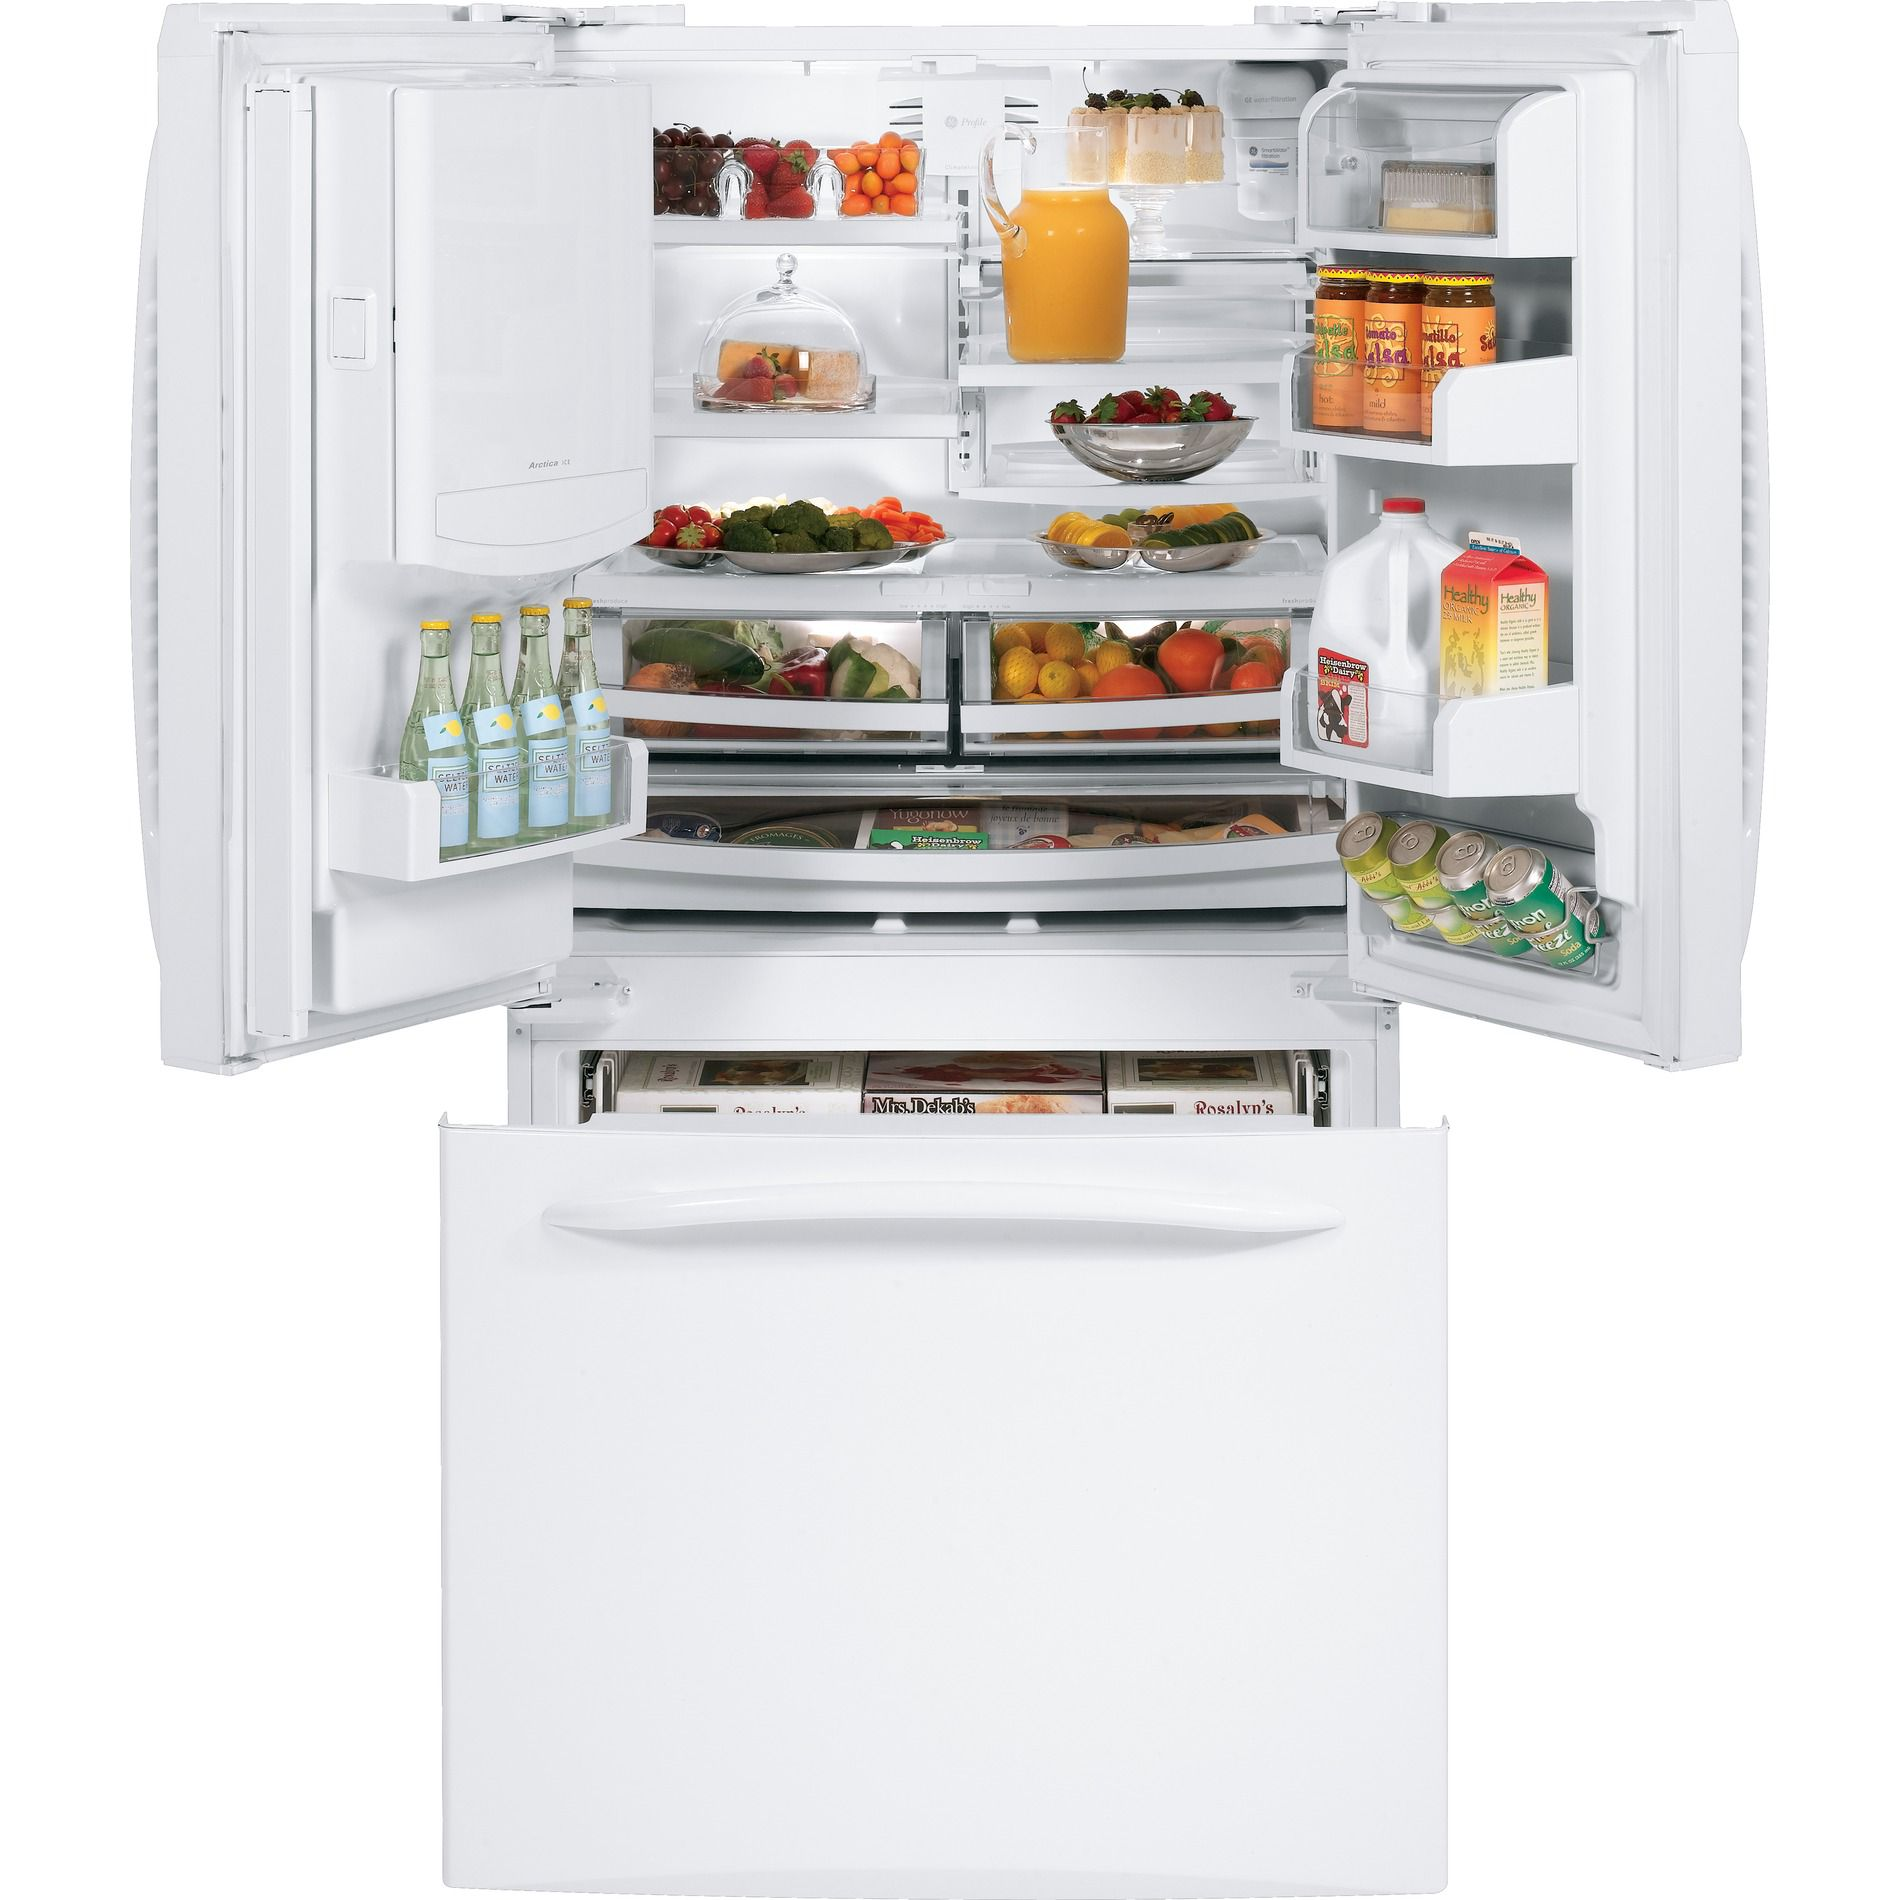 GE Profile™ Series 20.7 cu. ft. French Door Bottom-Freezer Refrigerator - White